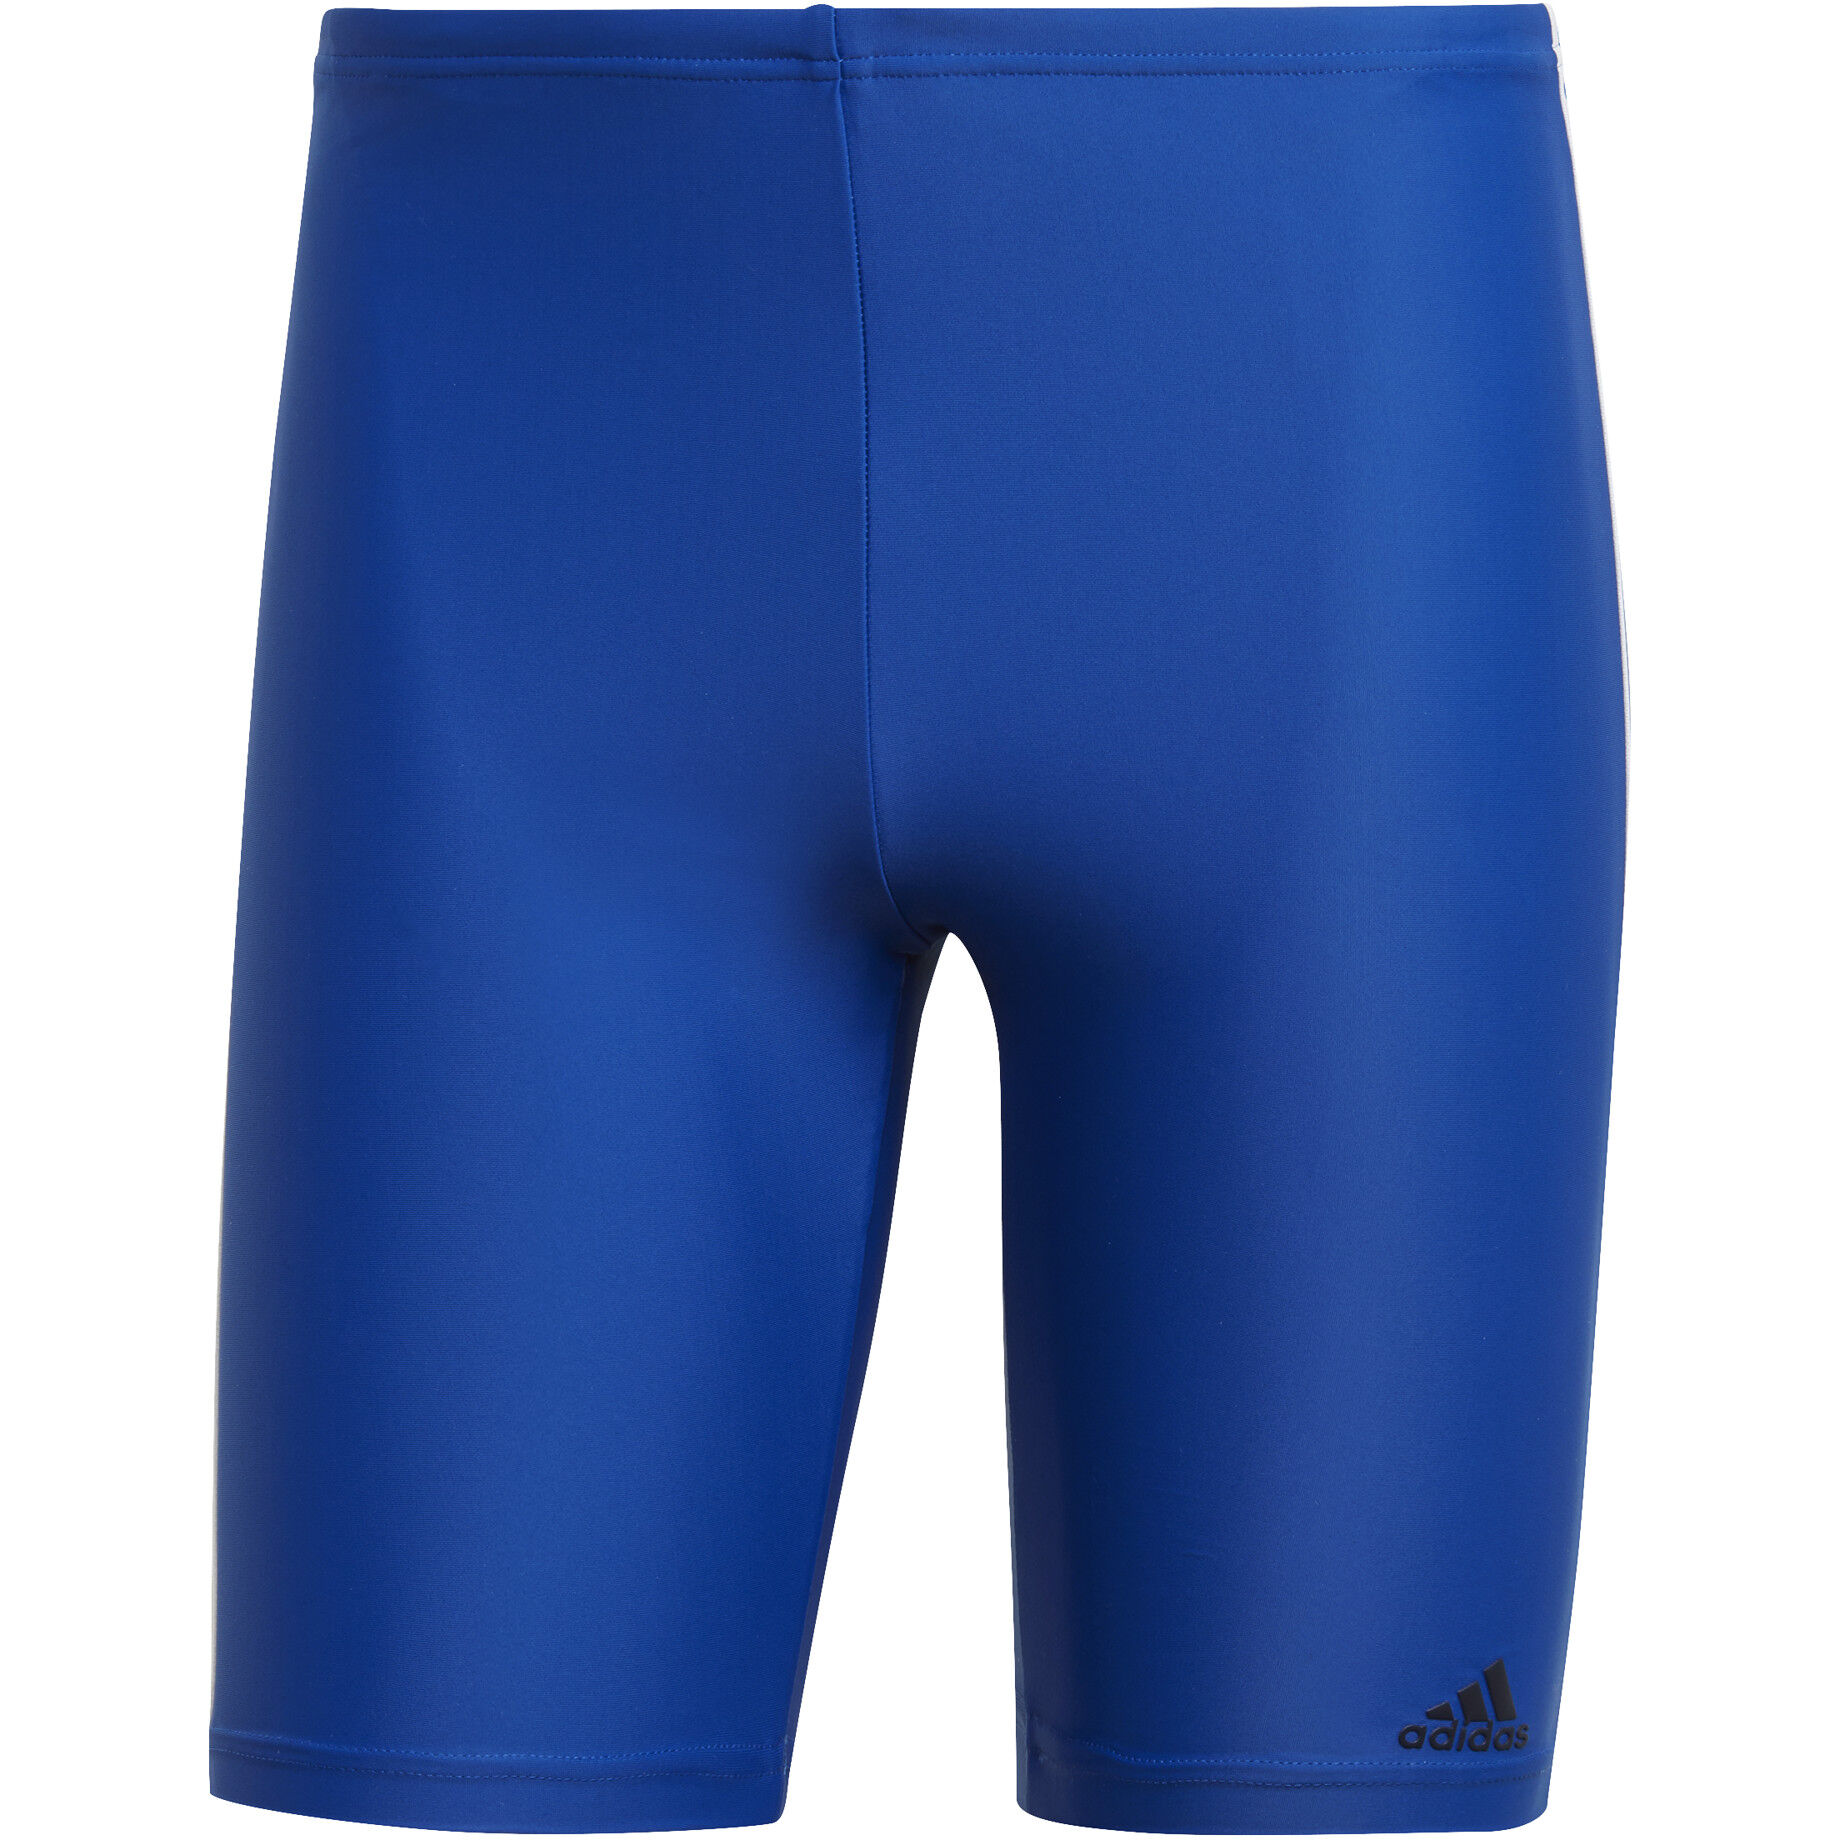 adidas 3 Stripes VSL Badeshorts Herren collegiate royal